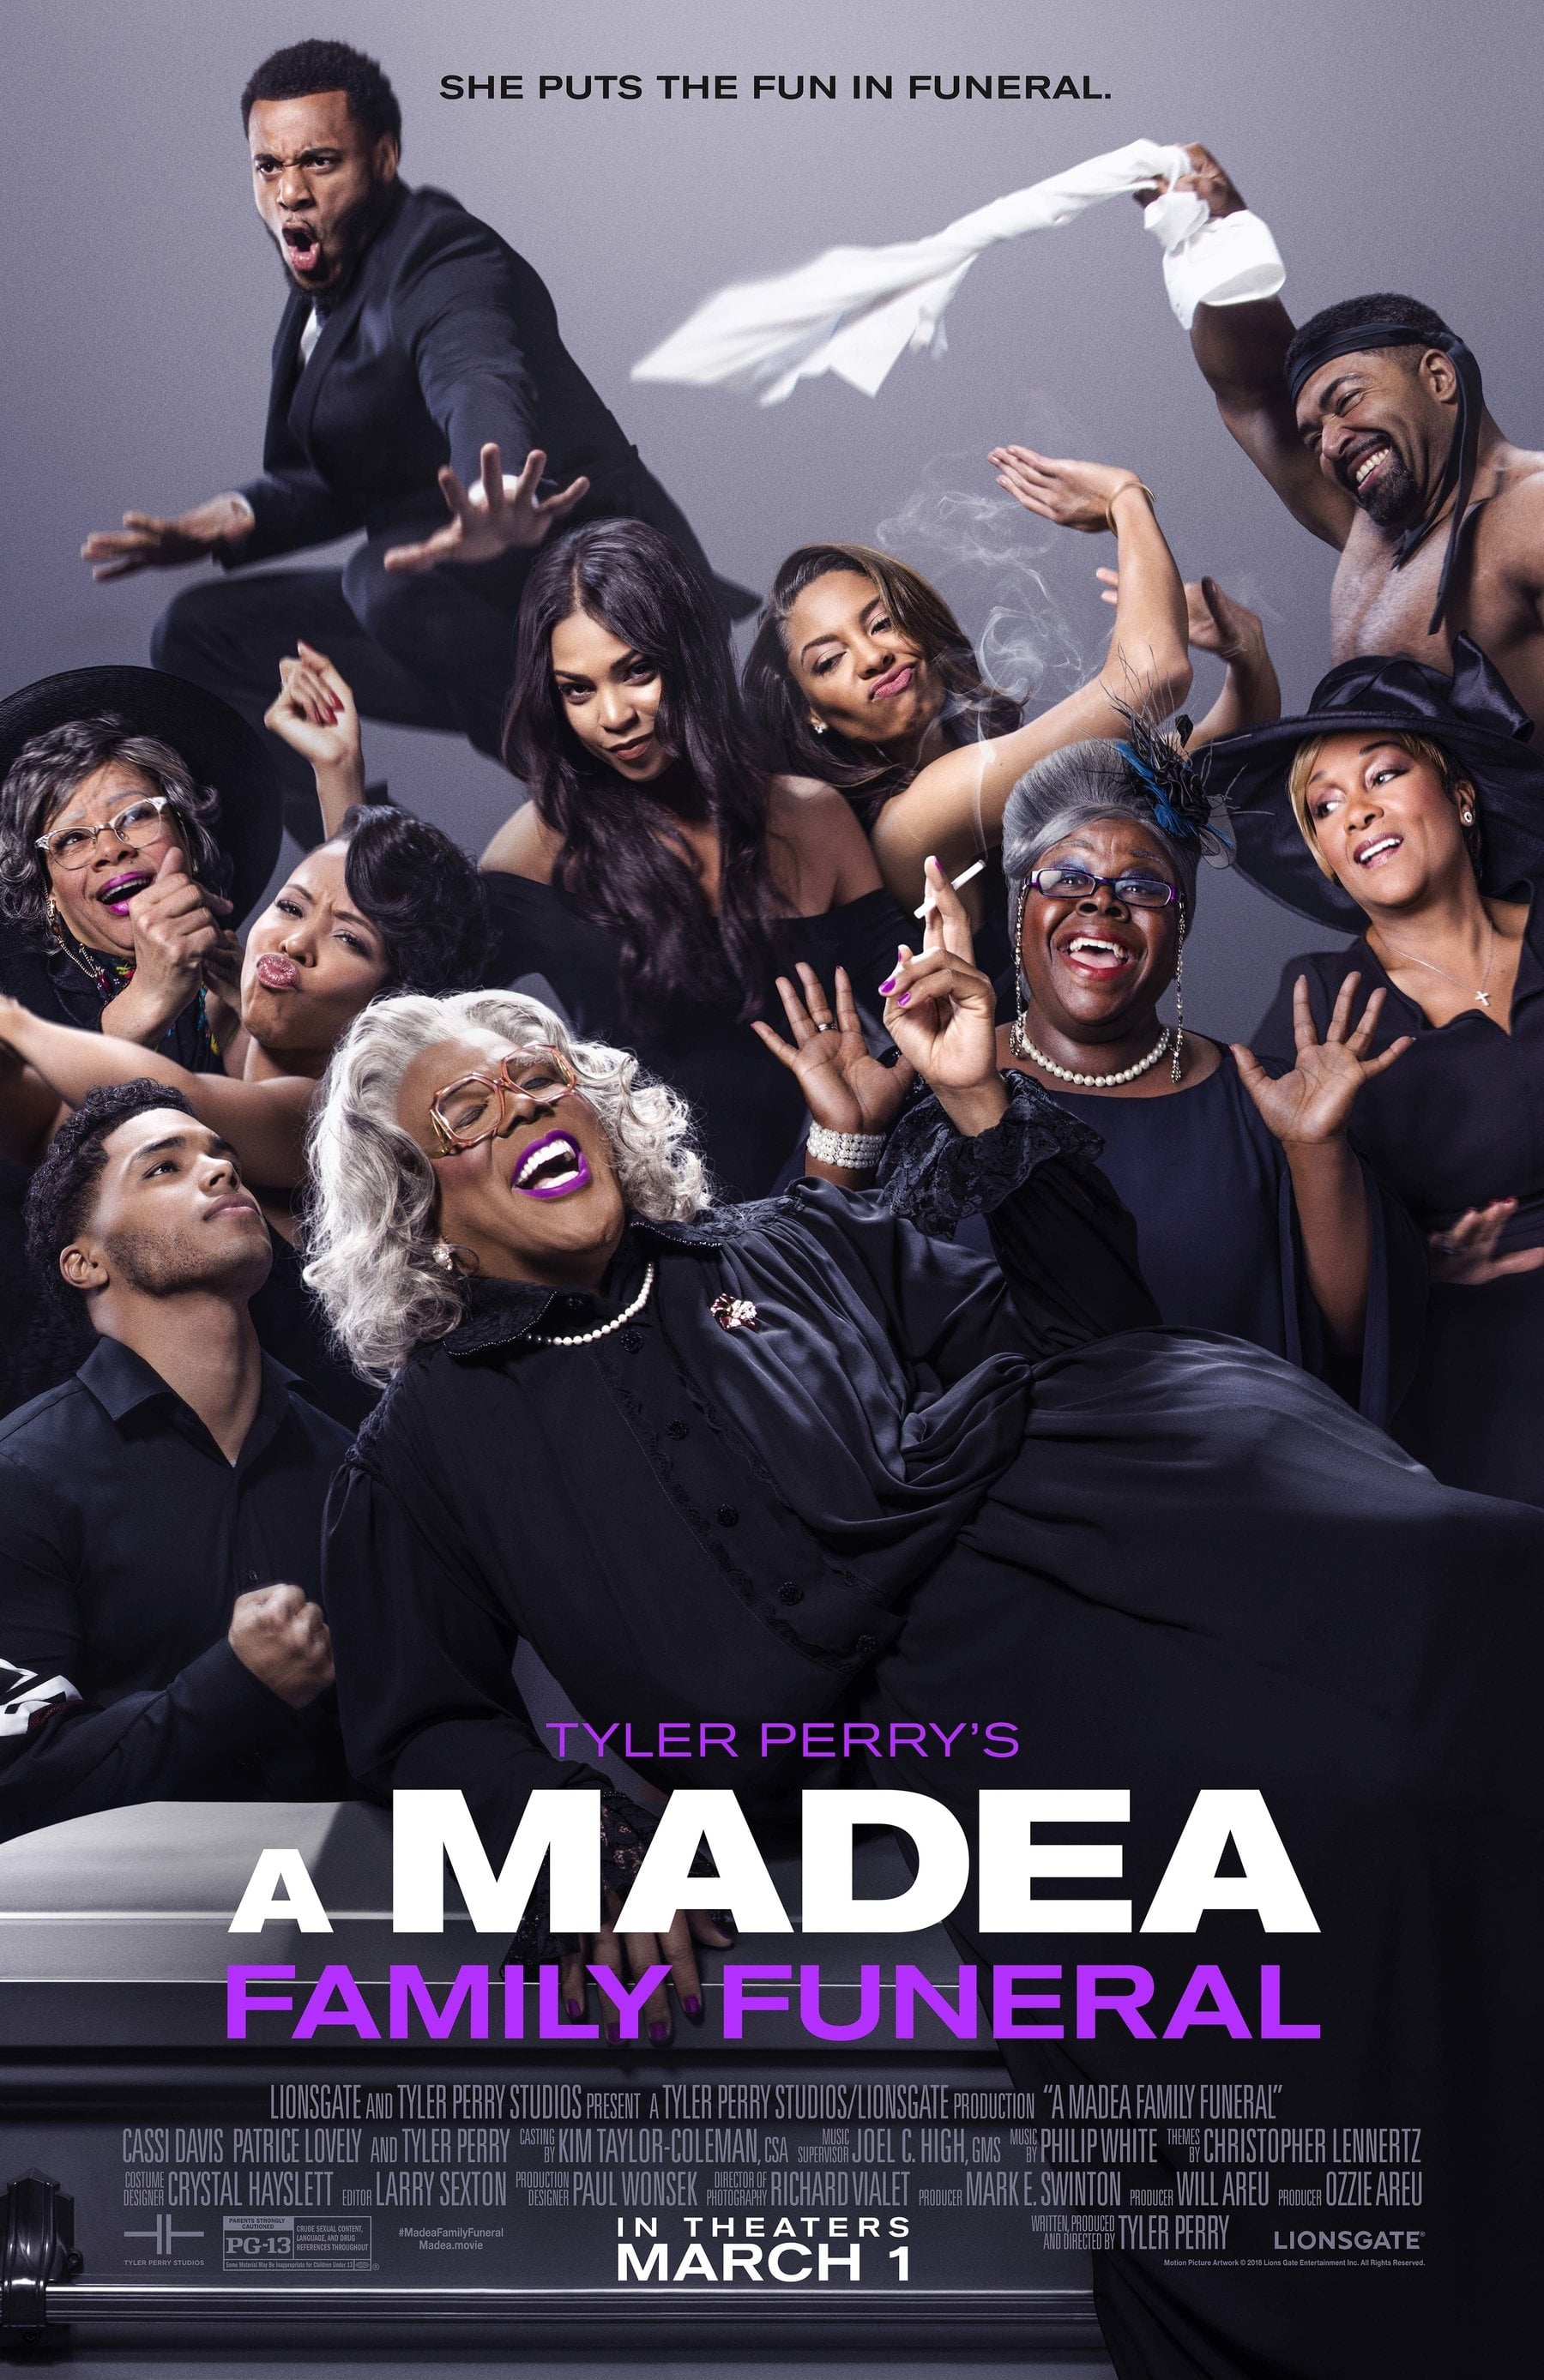 A Madea Family Funeral  123movies  Watch Online Full Movies TV Series  Gomovies  Putlockers